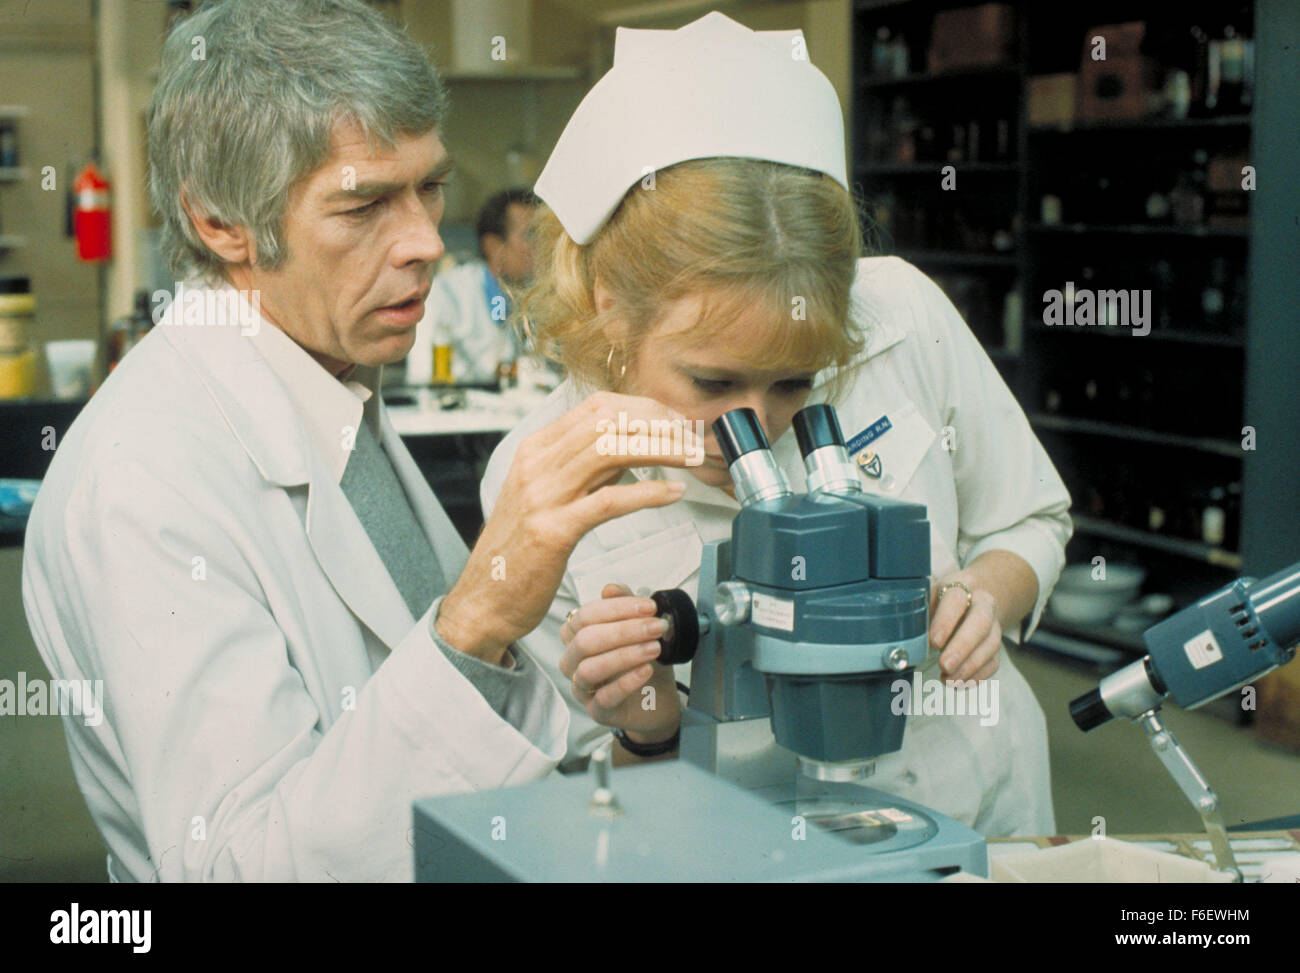 Mar 29, 1972; Boston , MA, USA; Actors JAMES COBURN stars as Dr. Peter Carey and SKY AUBREY as Nurse Angela Holder - Stock Image